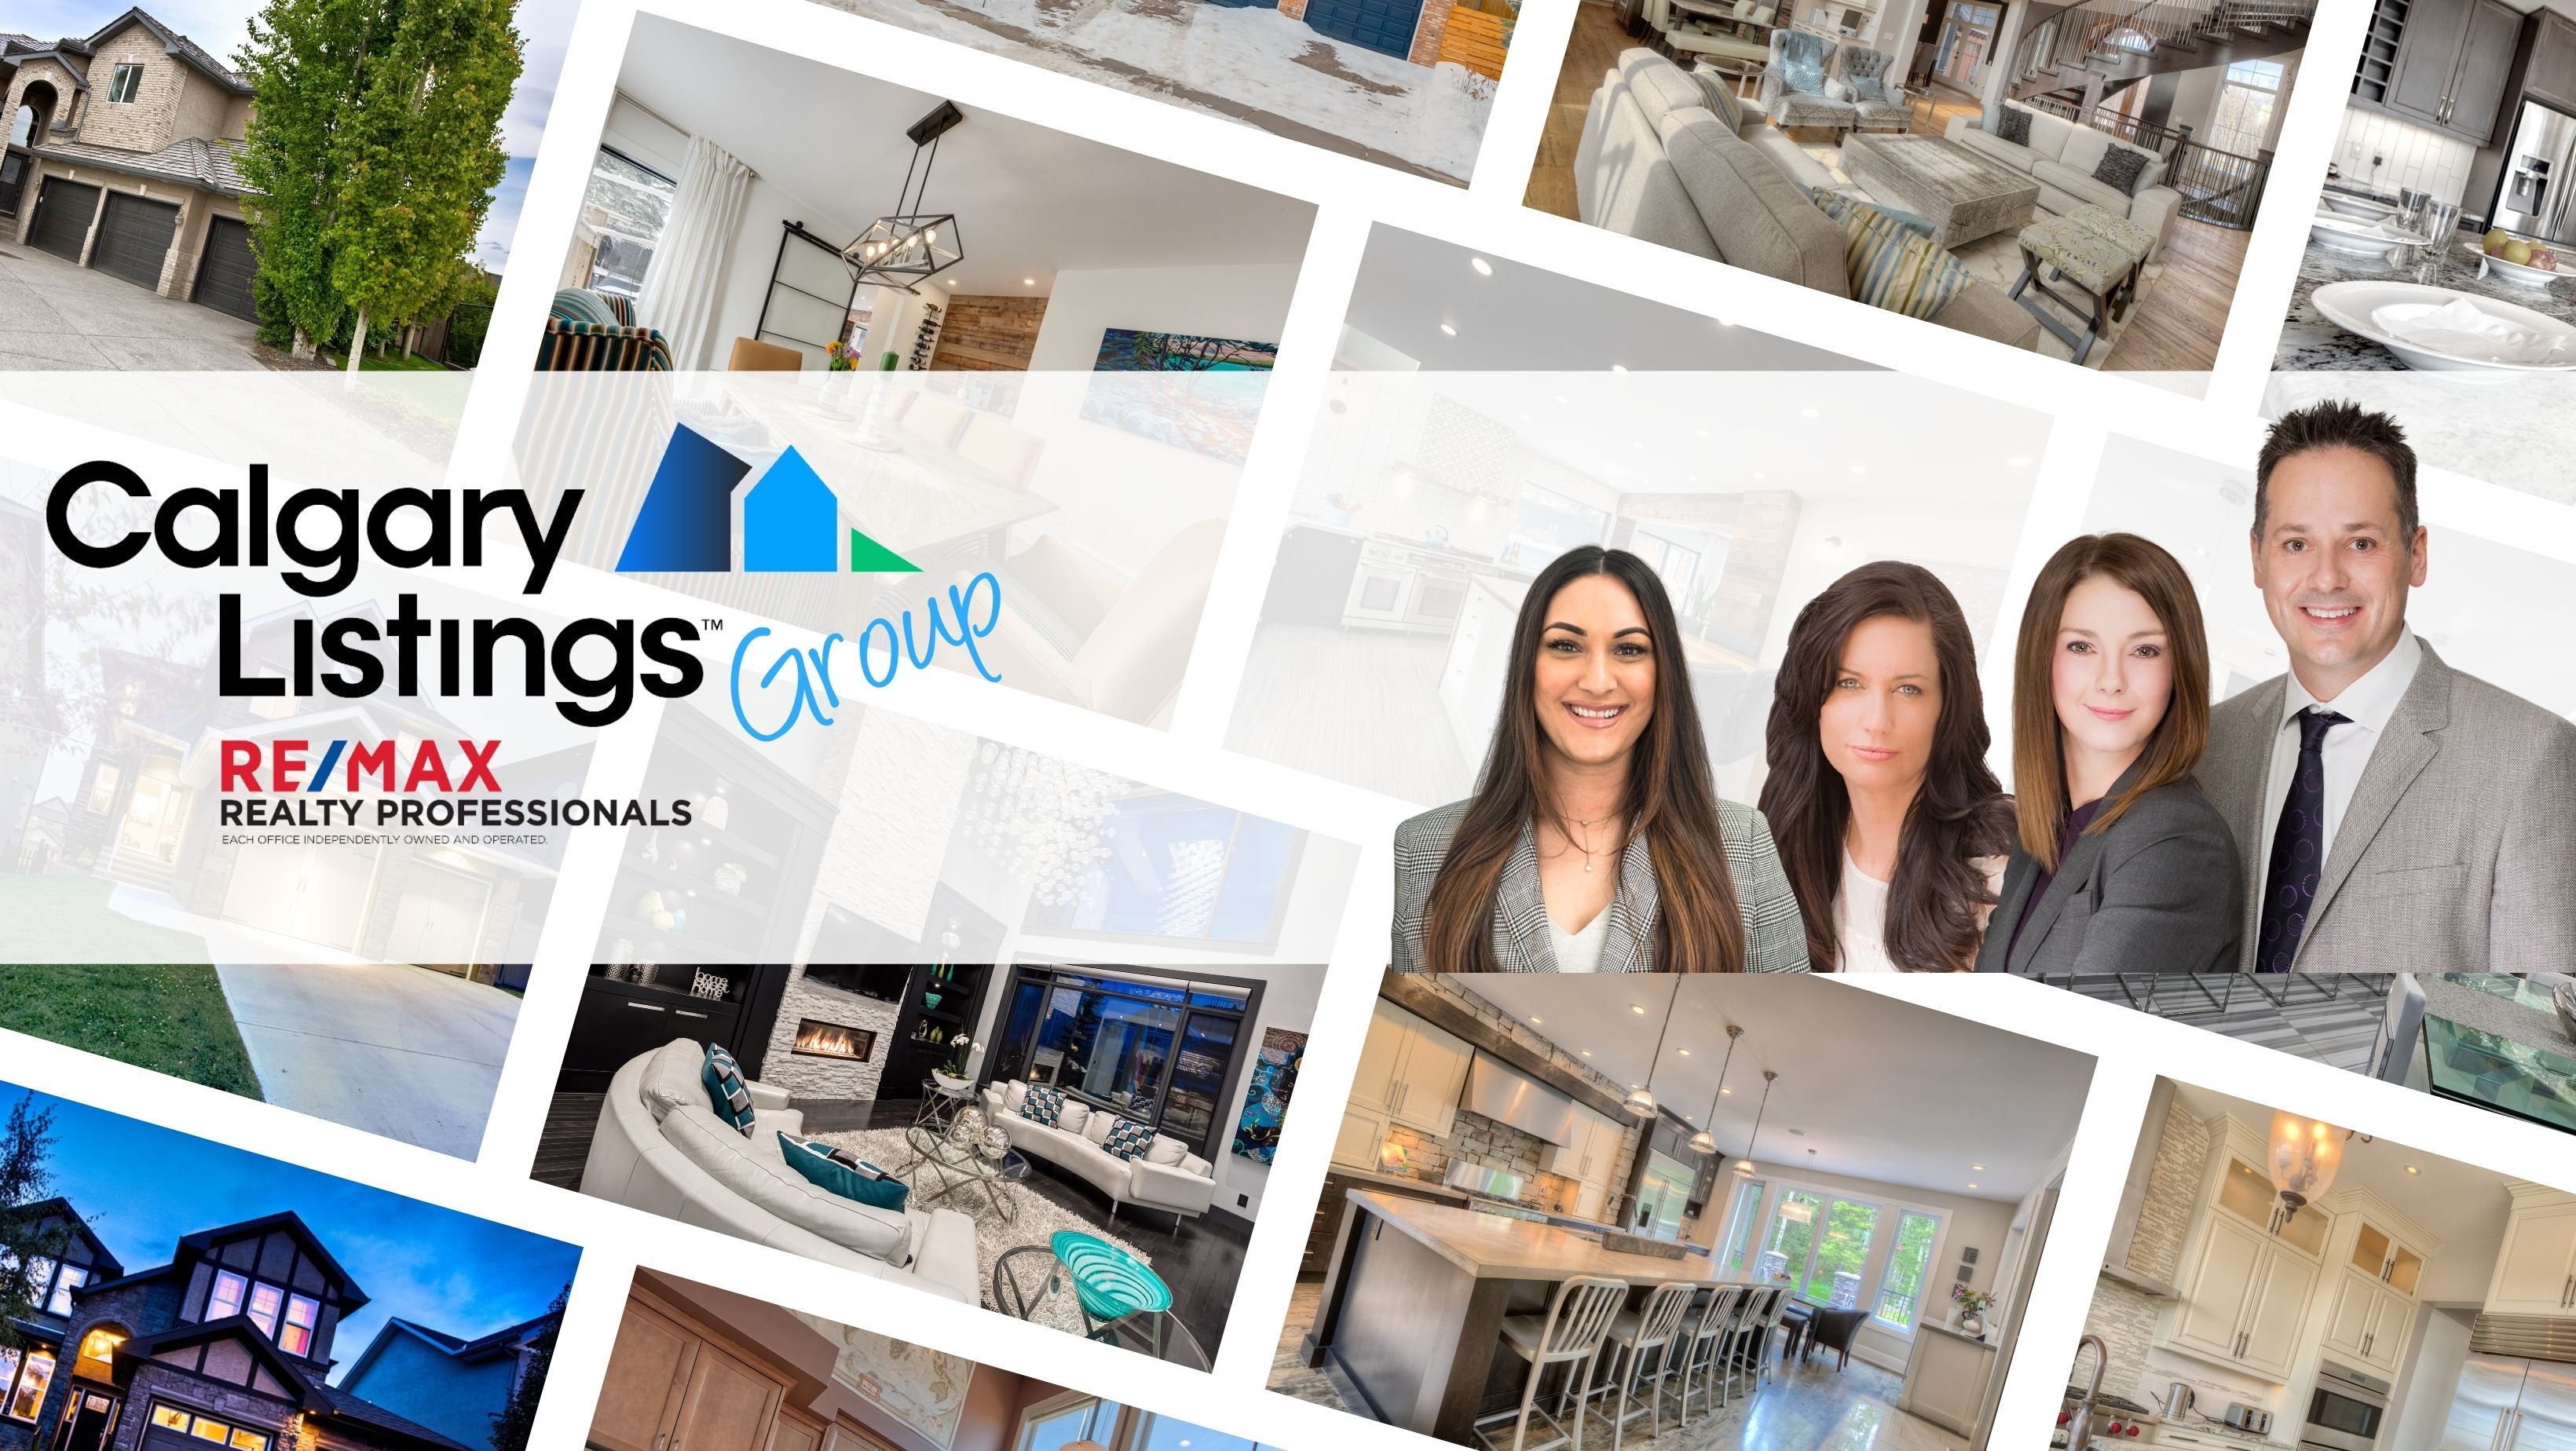 Your Calgary Listings Team - Calgary Realtors - Crystal Tost - Tyler Tost - Kelly Fraser- Chantelle Jenkins selling Calgary and area residential real estate